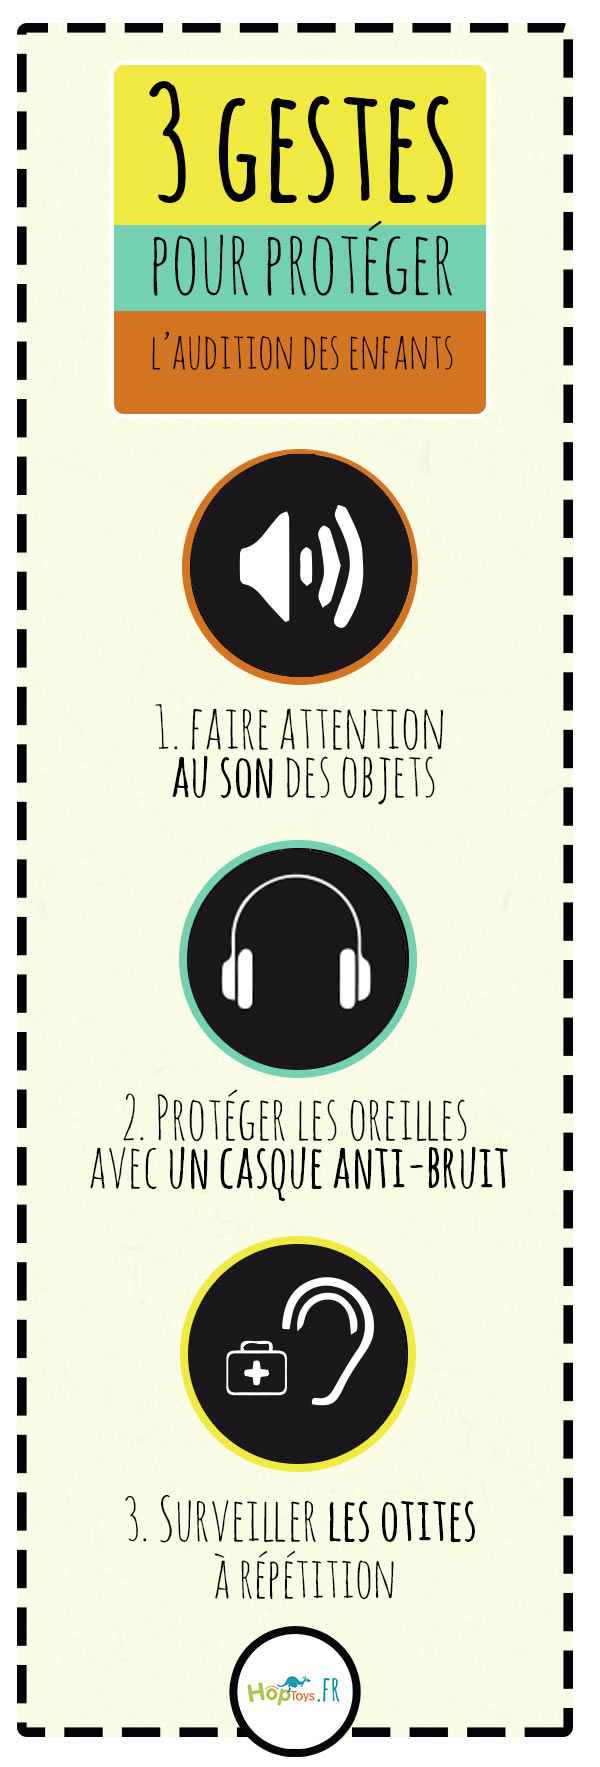 sonores-prevention-nuisance-sonores